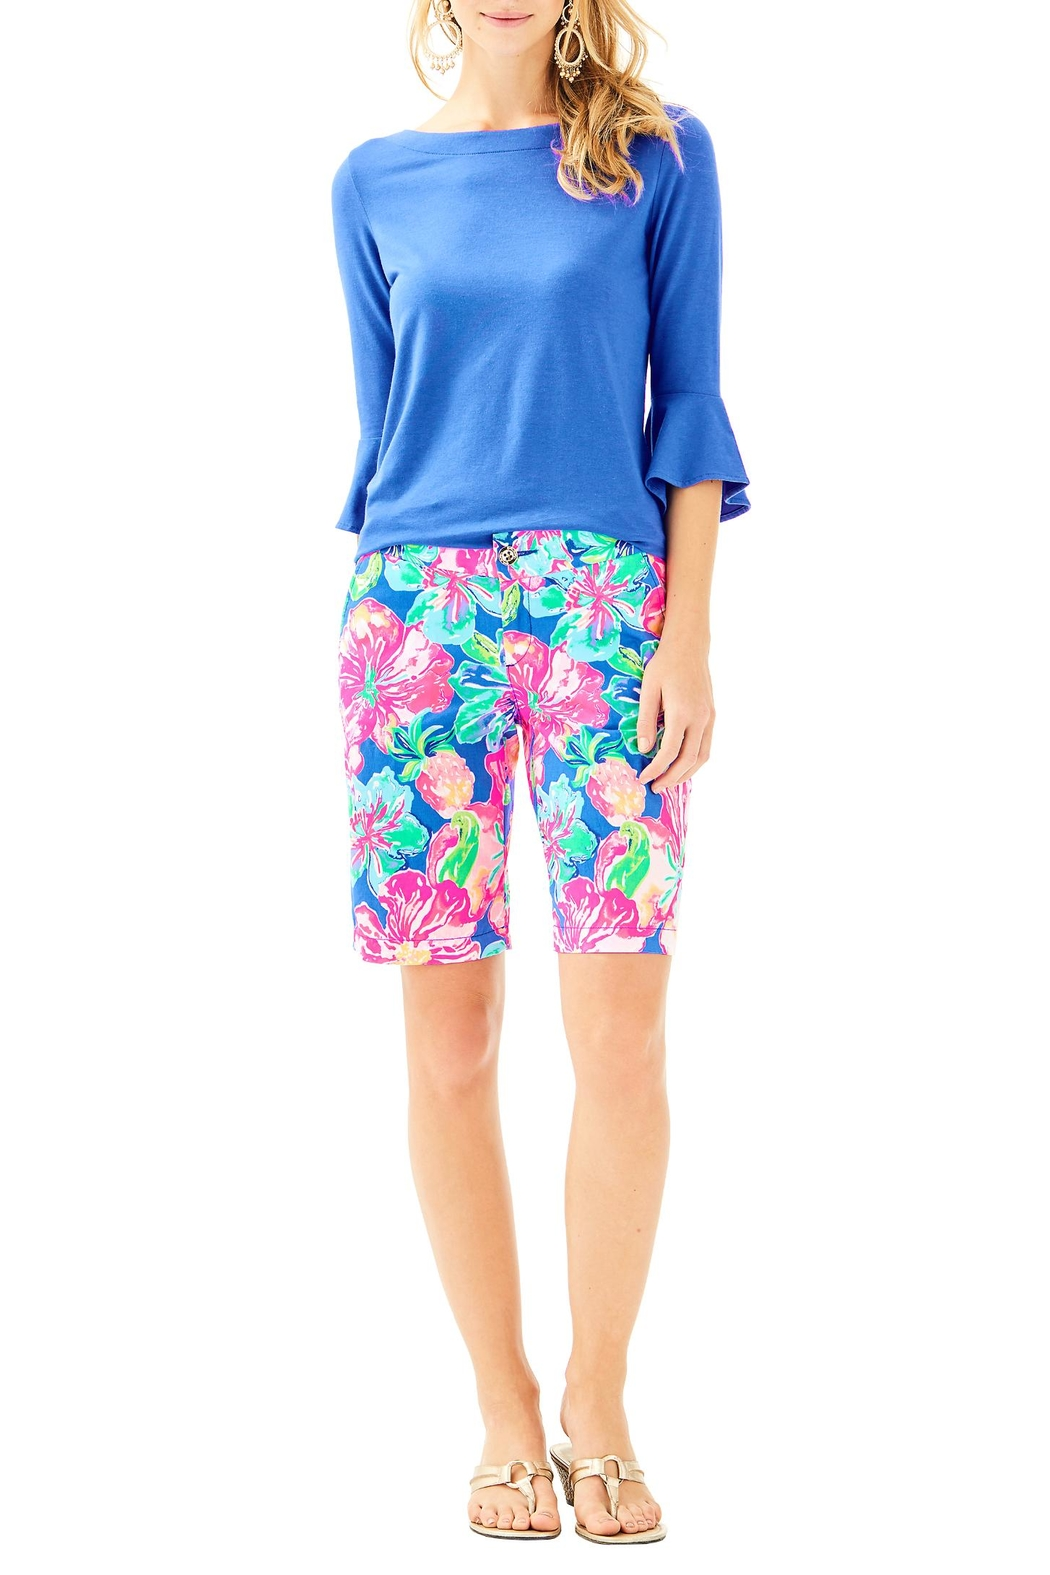 Lilly Pulitzer Chipper Short - Back Cropped Image